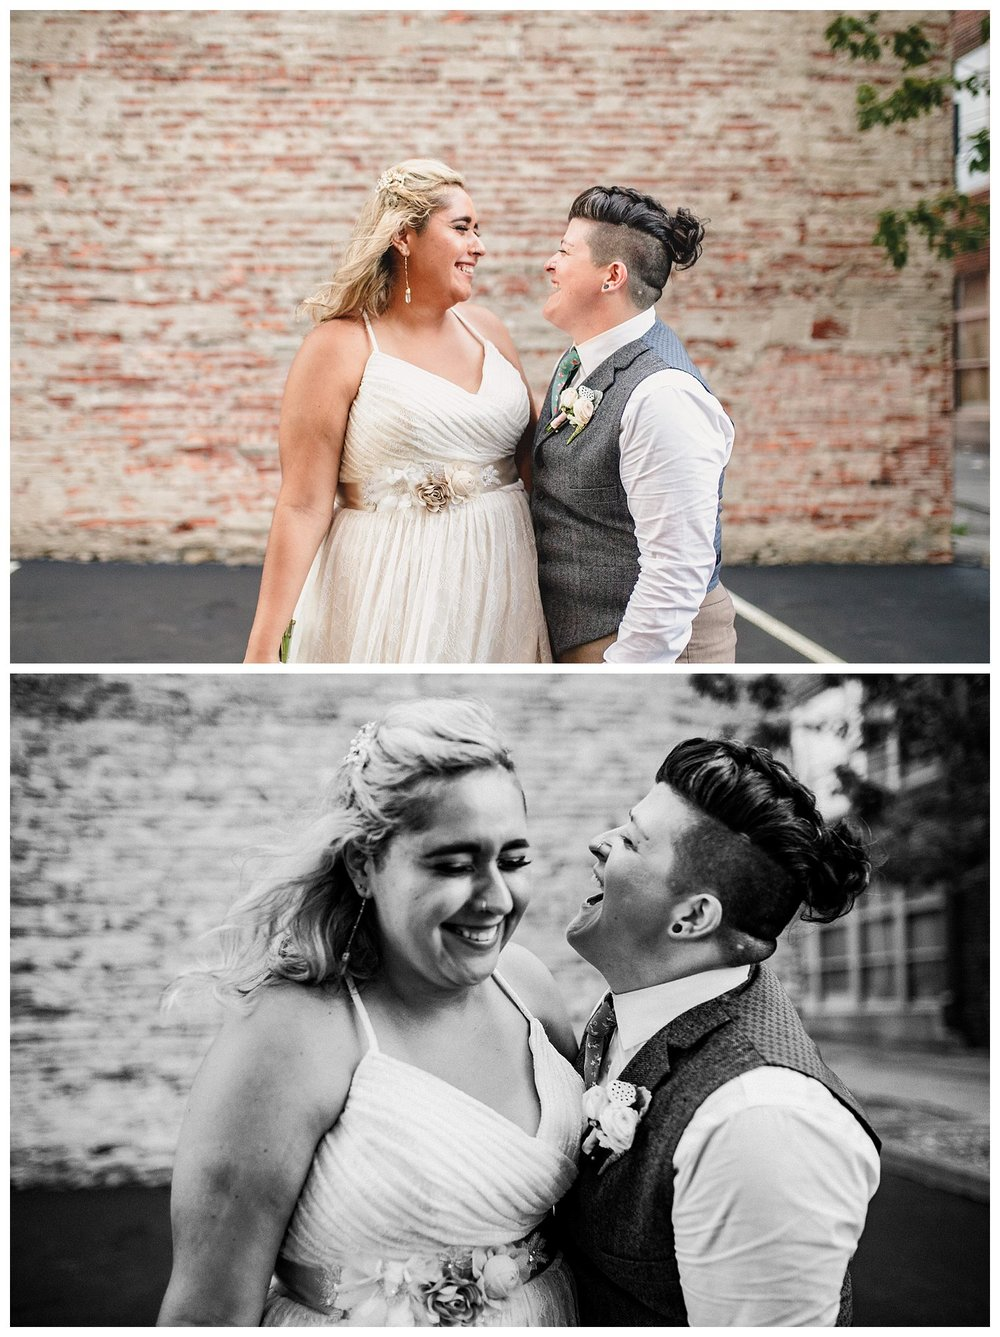 Kelsey_Diane_Photography_The_Vow_Exchange_Kansas_City_LGBT_Friendly_Wedding_Photographer_Kansas_City_Scout_Ica_0752.jpg